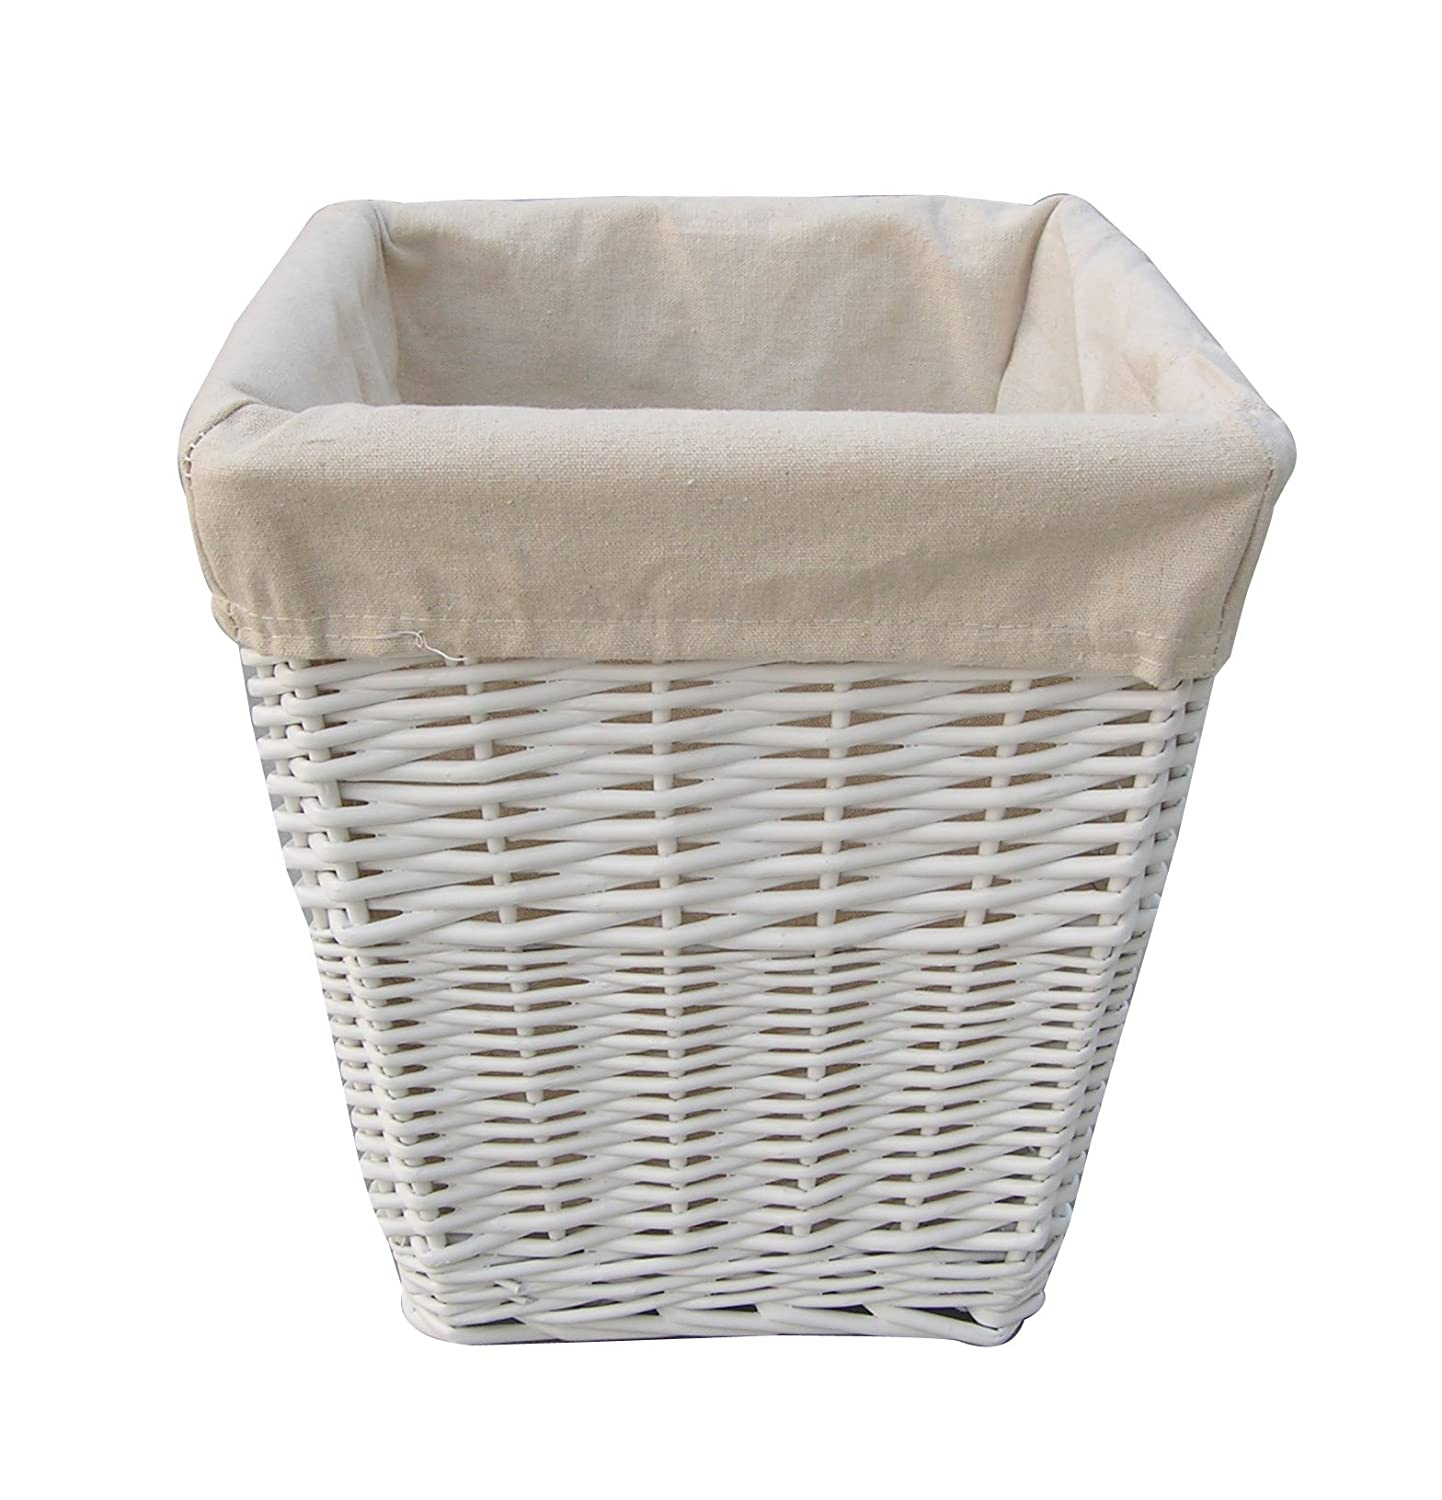 Homescapes Lined White Square Willow Wicker Waste Paper Basket A Perfect Office Bathroom or Bedroom Bin, H 28cm x W 26cm x 18cm Square Base